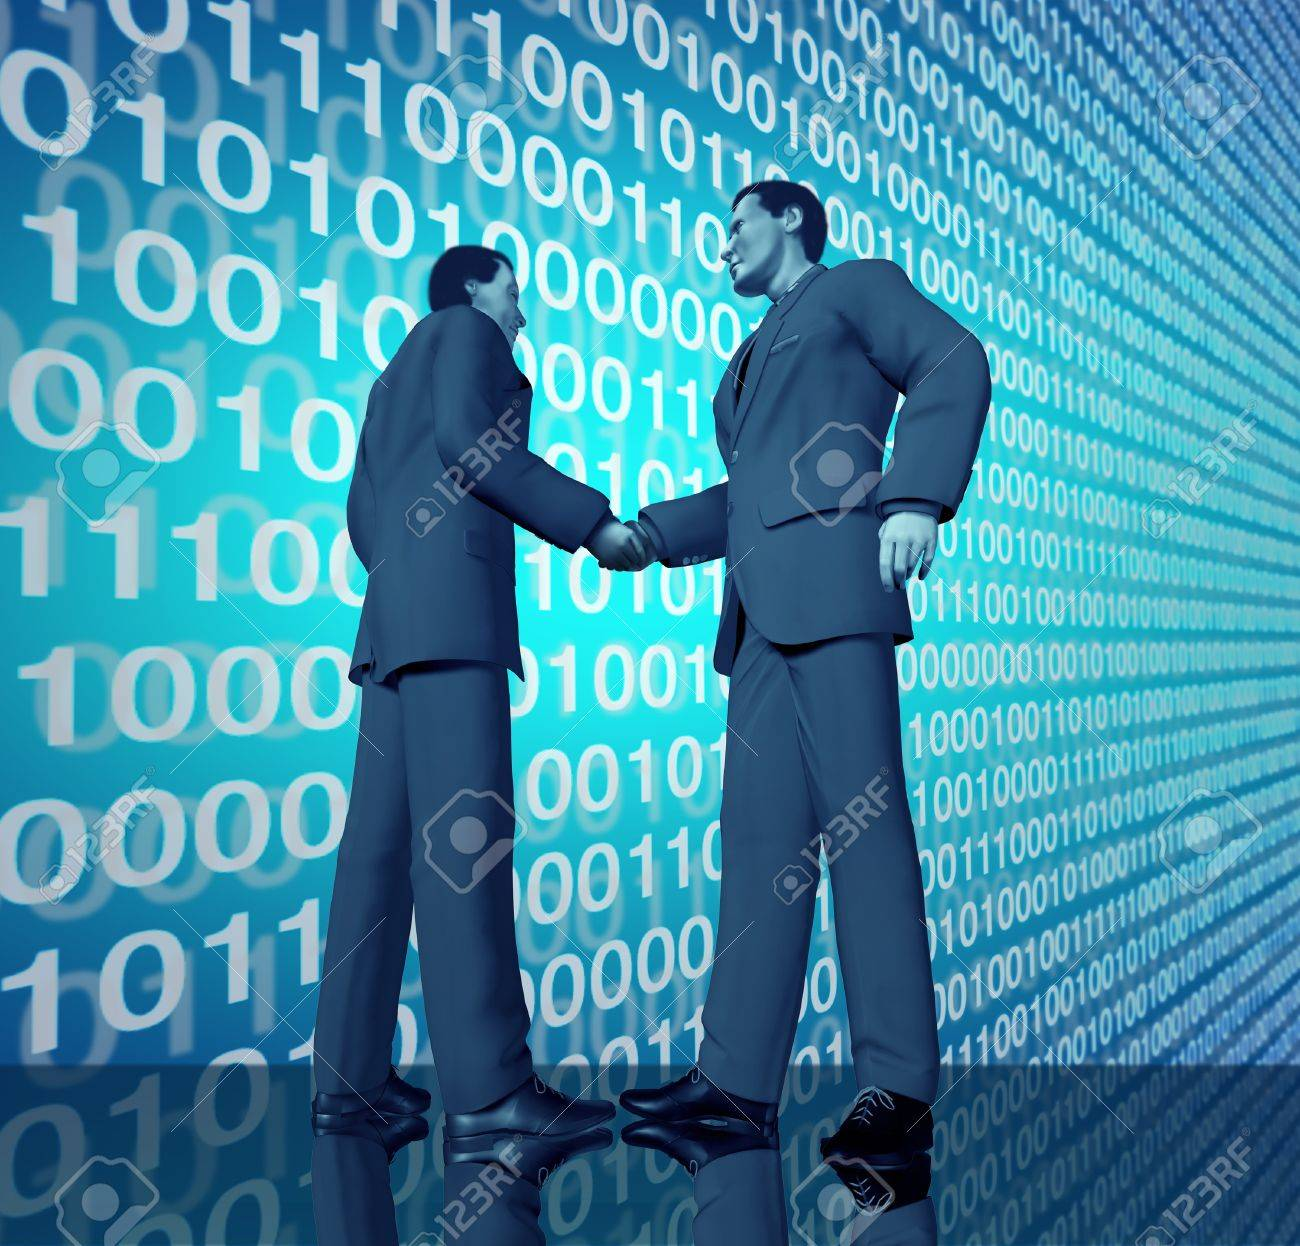 Technology business deal with a handshake between two buinessmen with blue binary digital code in the background representing partnerships connections and contract agreements in the world of high tech and computers. Stock Photo - 11066286